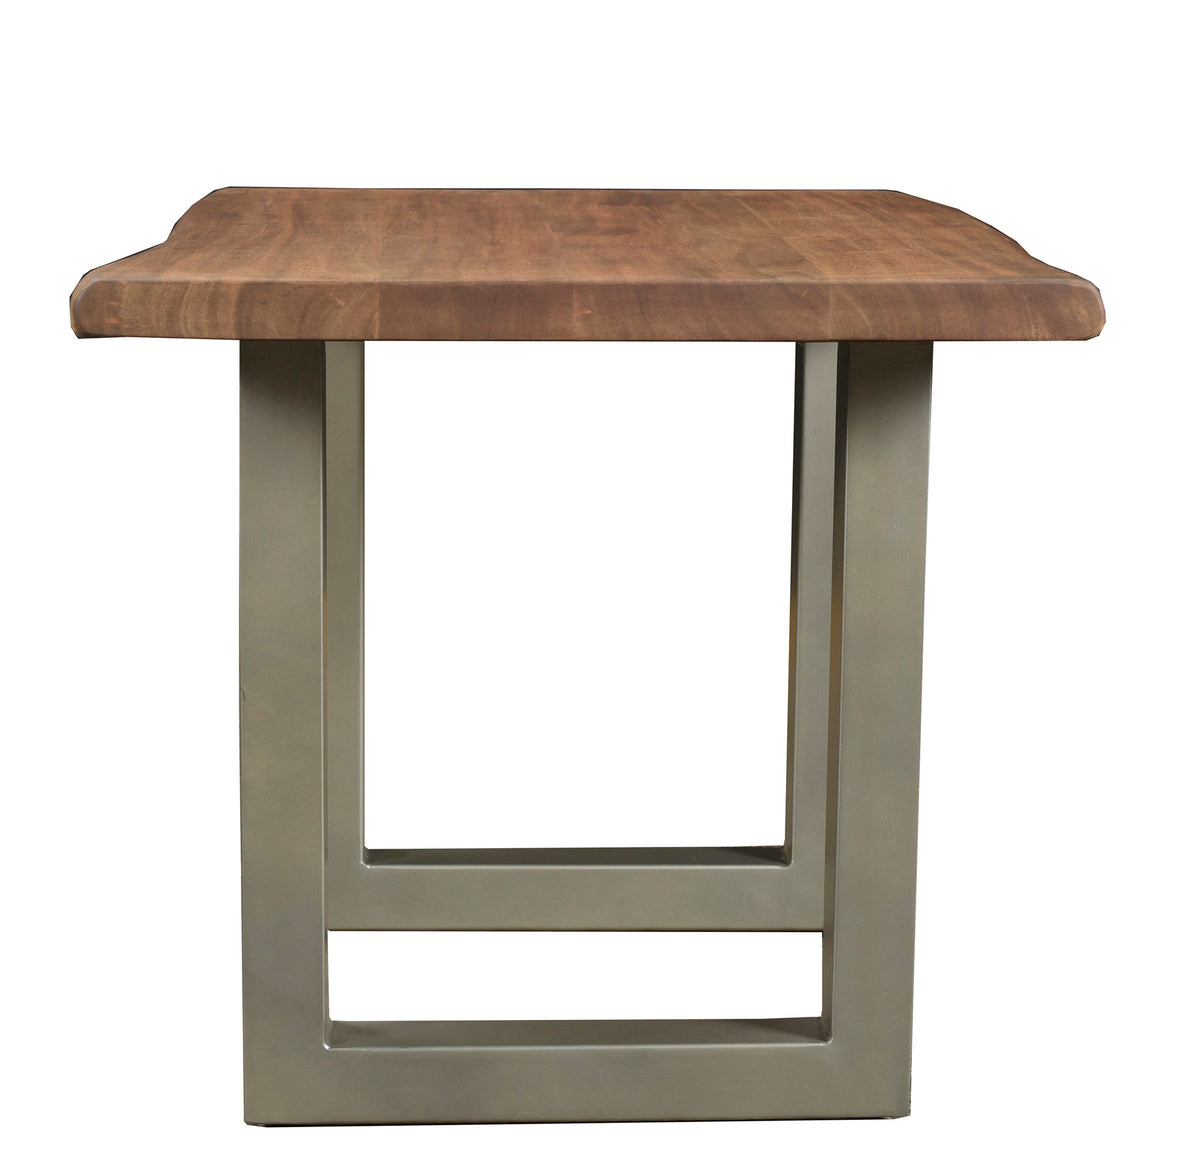 TAJ END TABLE - MATTE BROWN U TUBE METAL BASE